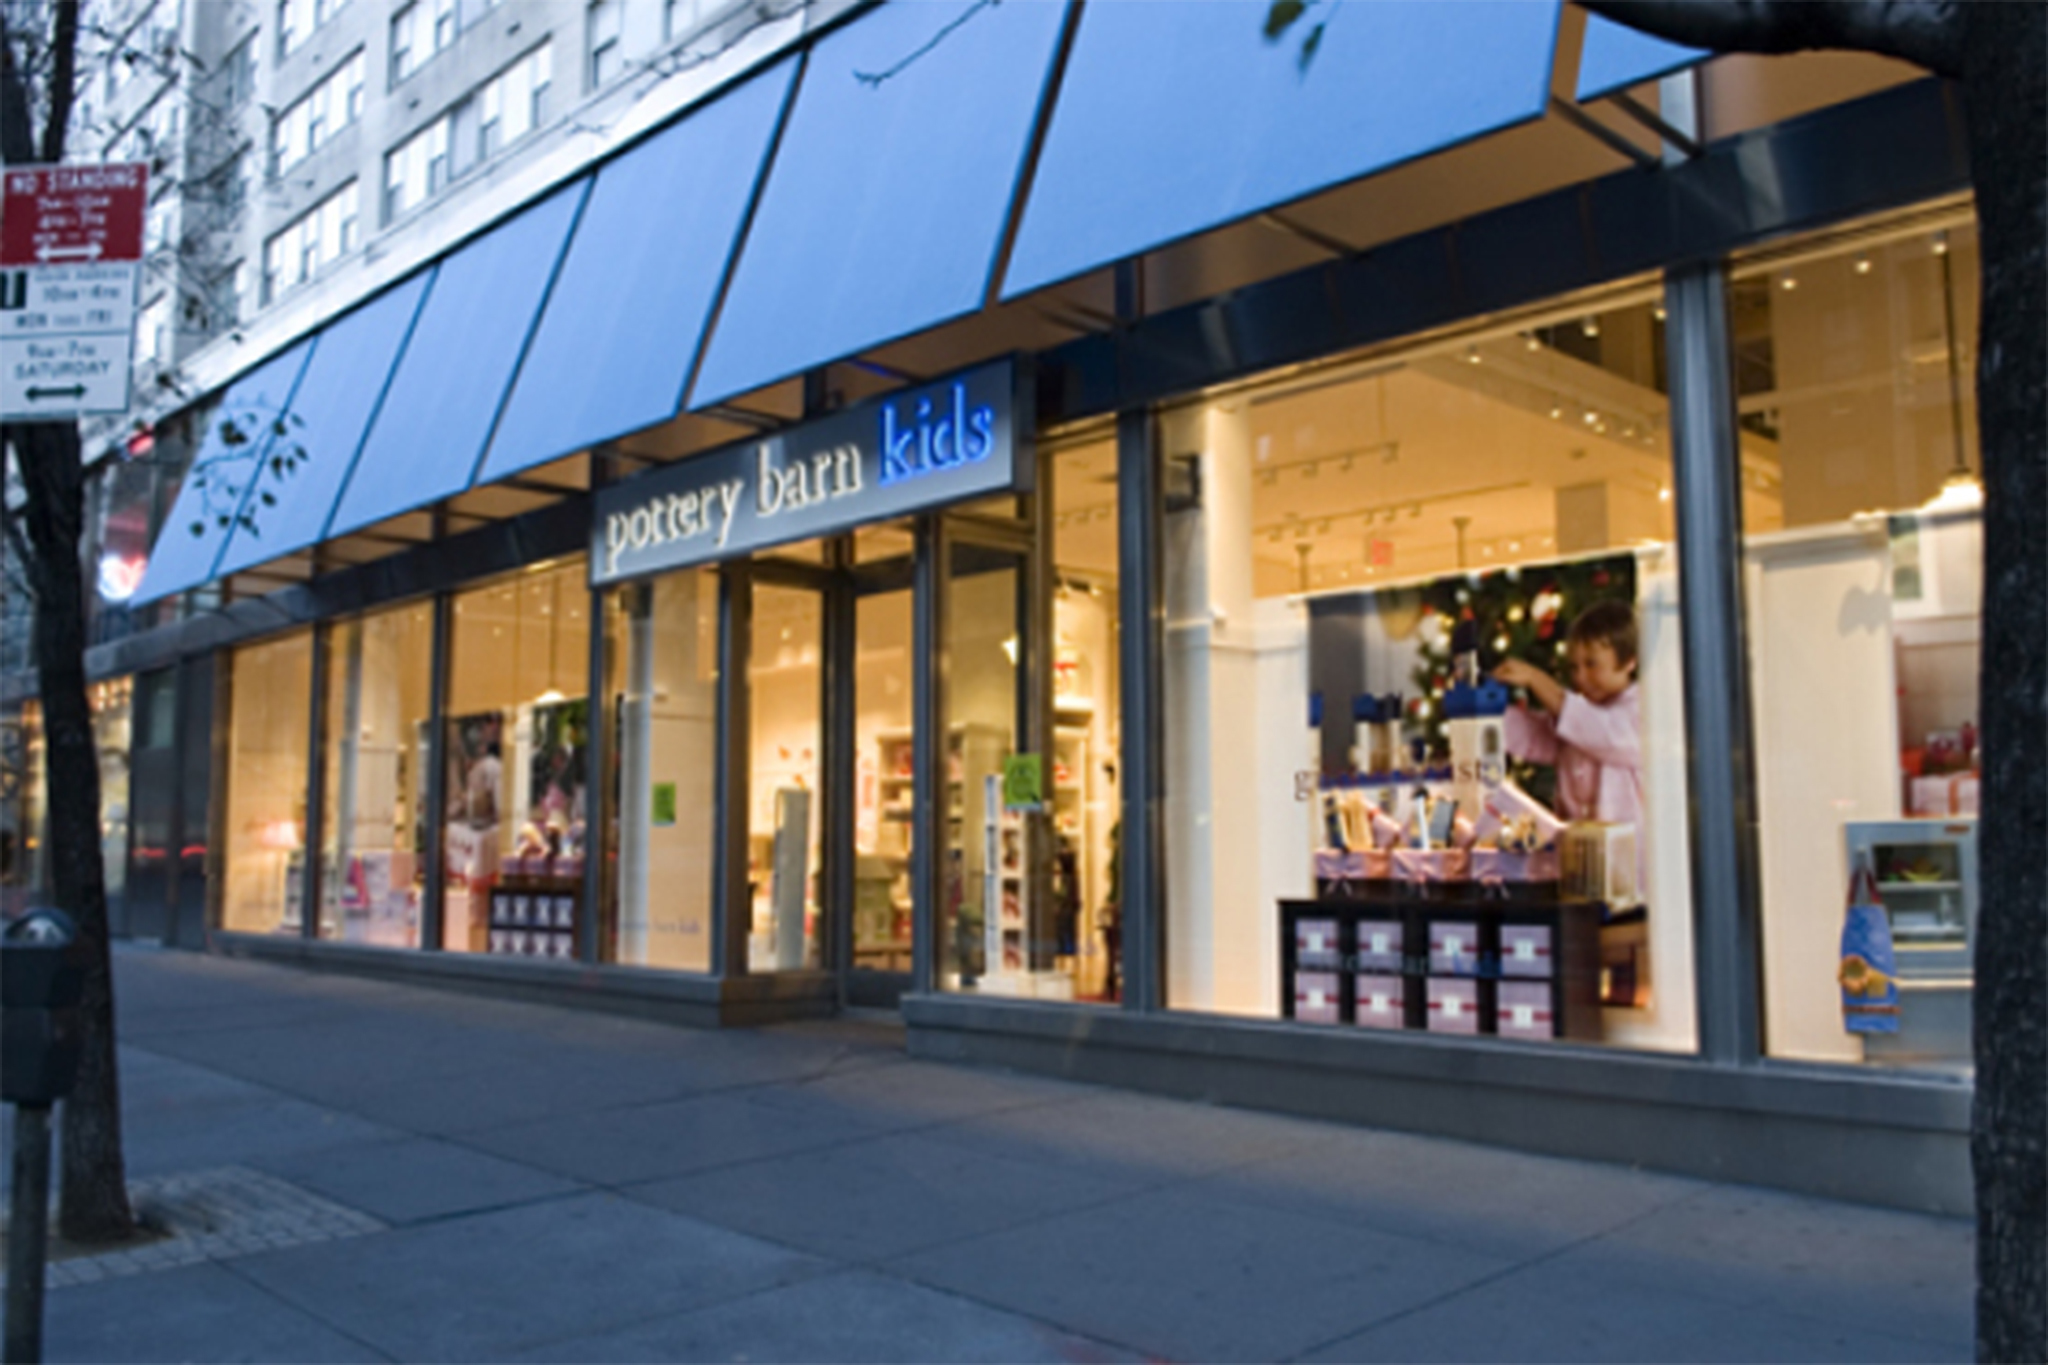 Cushty Kids Pottery Barn Kids Outlet Store Online Pottery Barn Kids Outlet Location Pottery Barn Halloween Costume Stores Nyc baby Pottery Barn Kids Outlet